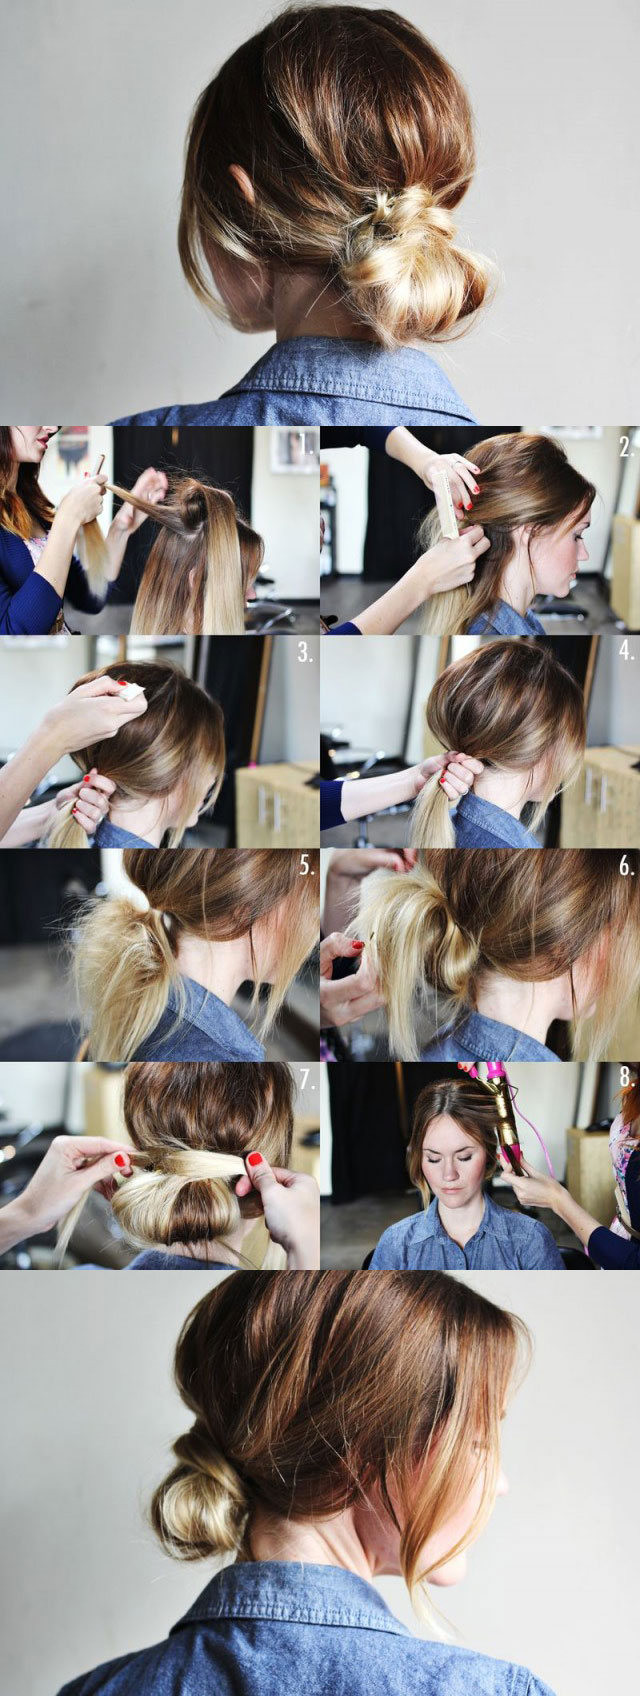 Best ideas about Bun Hairstyles For Short Hair Step By Step . Save or Pin 20 Beautiful Hairstyles for Long Hair Step by Step Now.